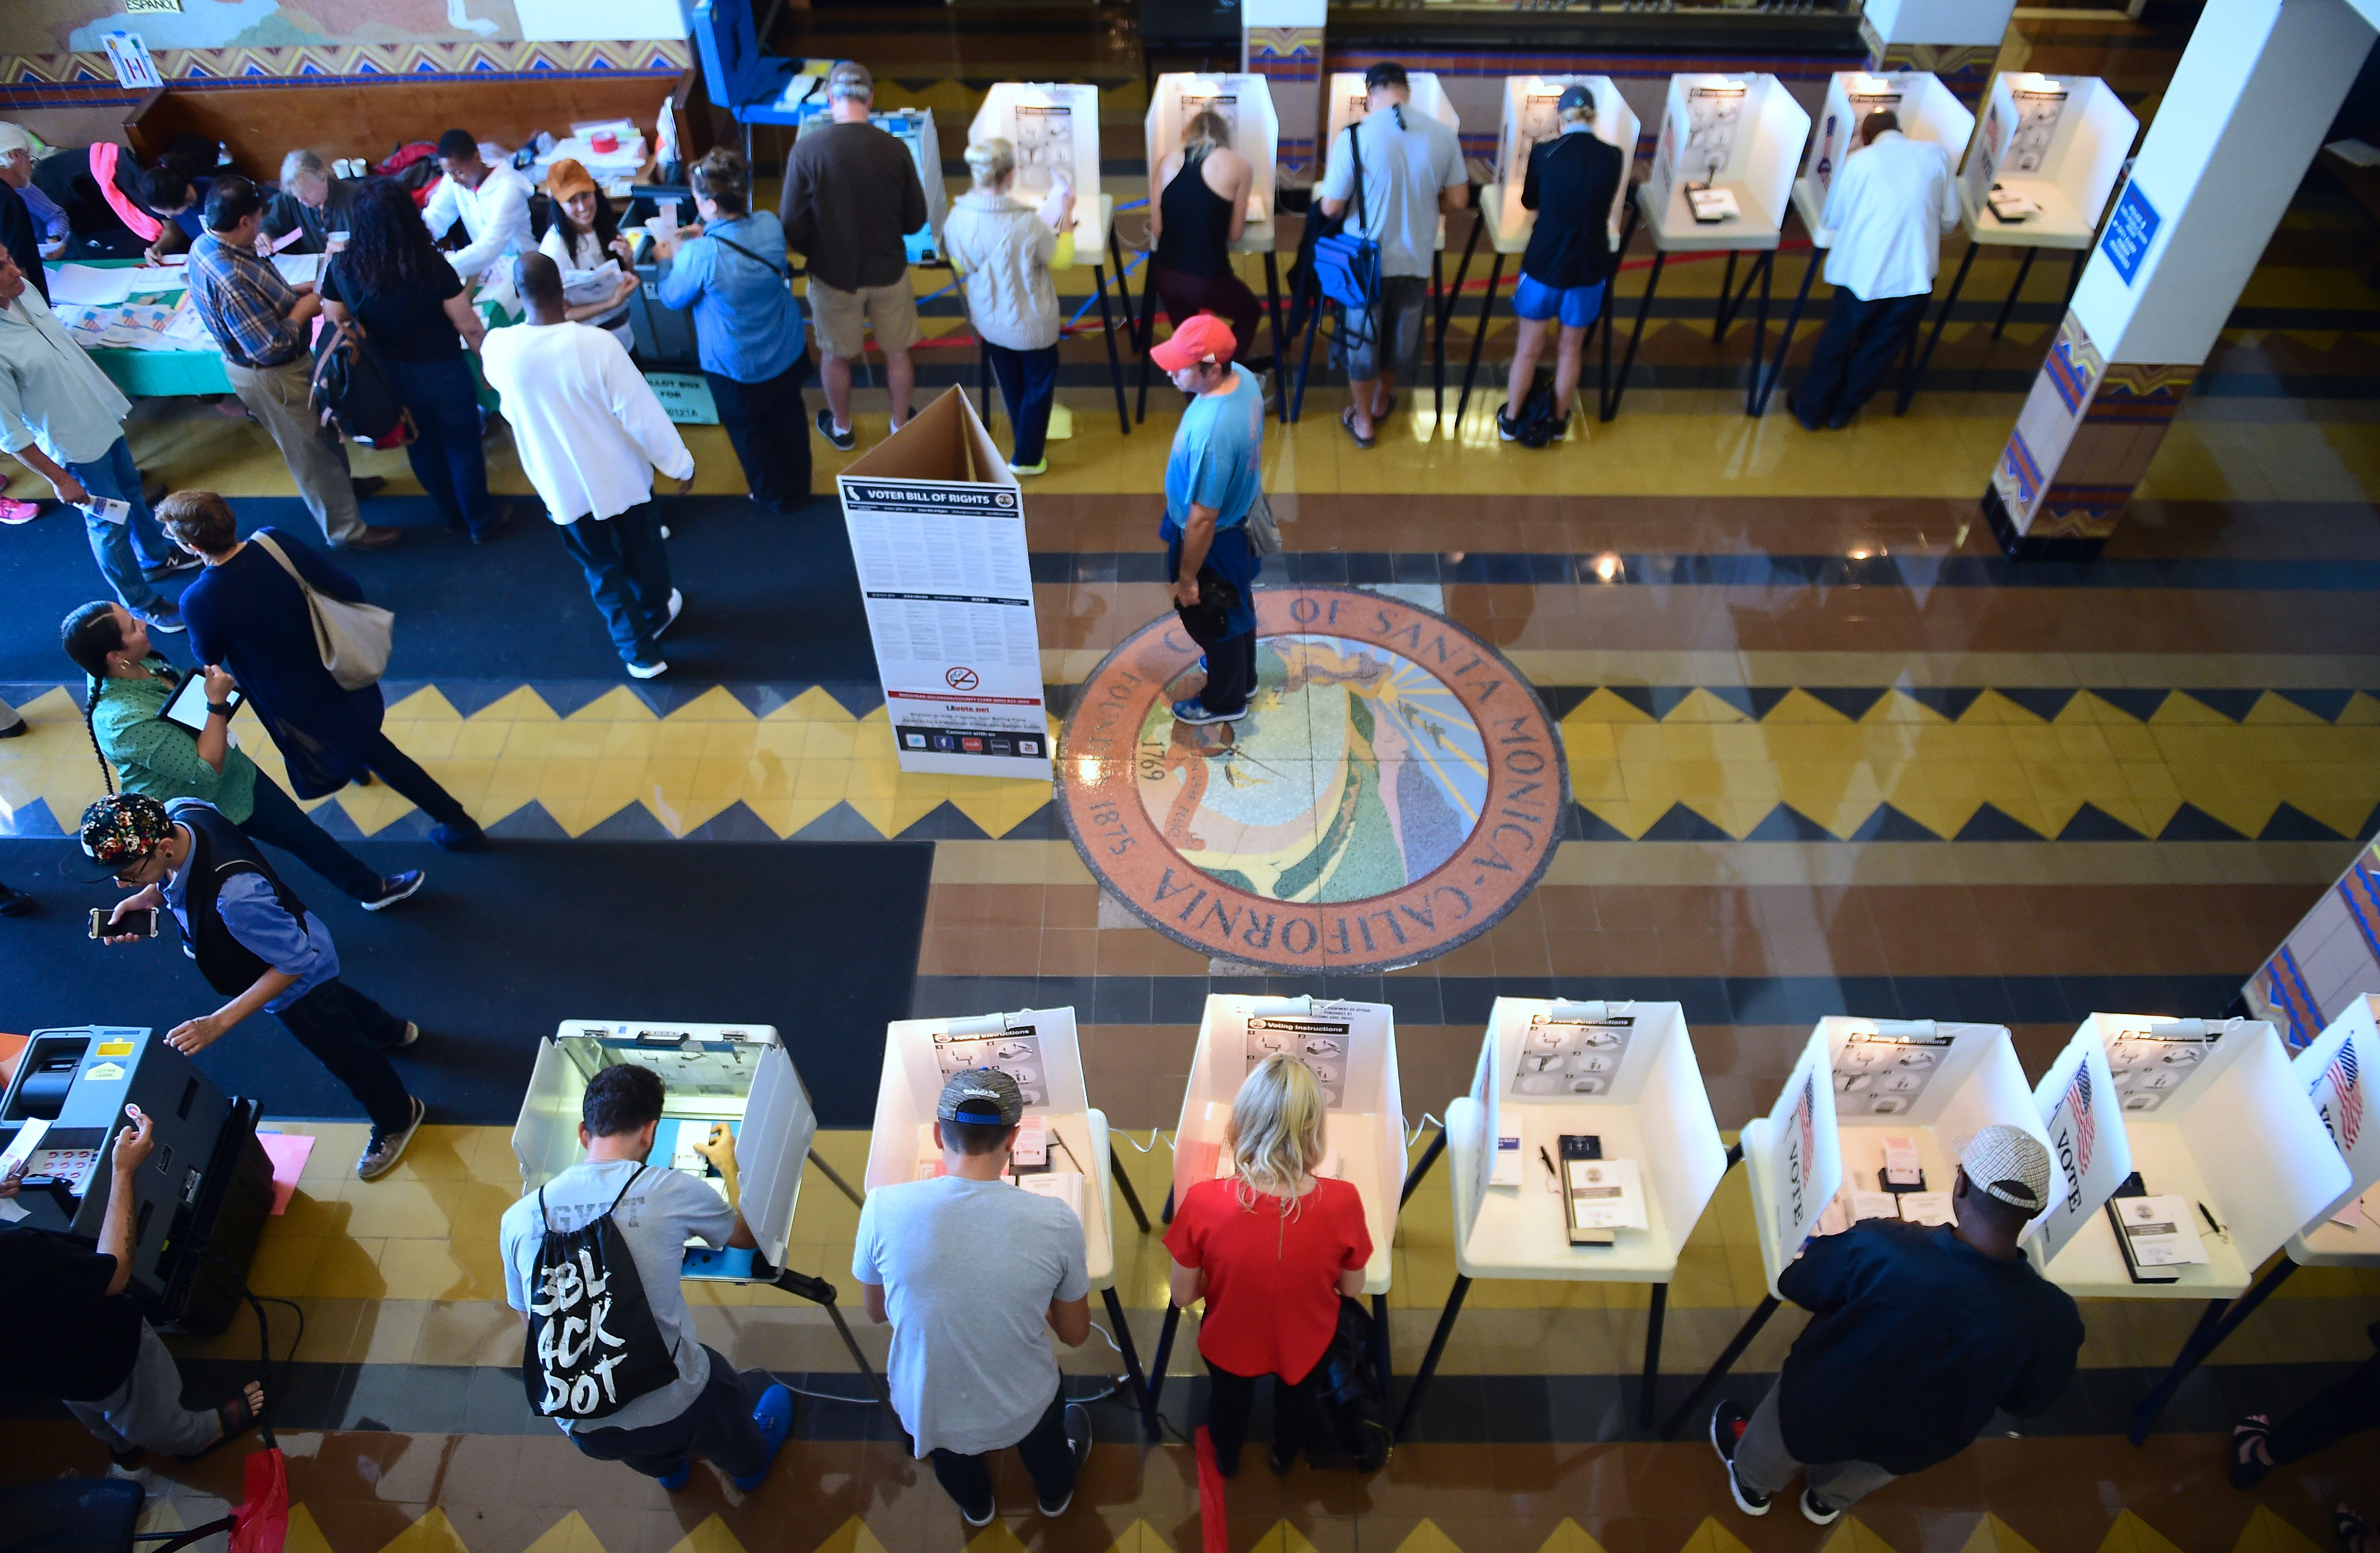 People vote on the US presidential election at Santa Monica City Hall on November 8, 2016 in Santa Monica, Calif.